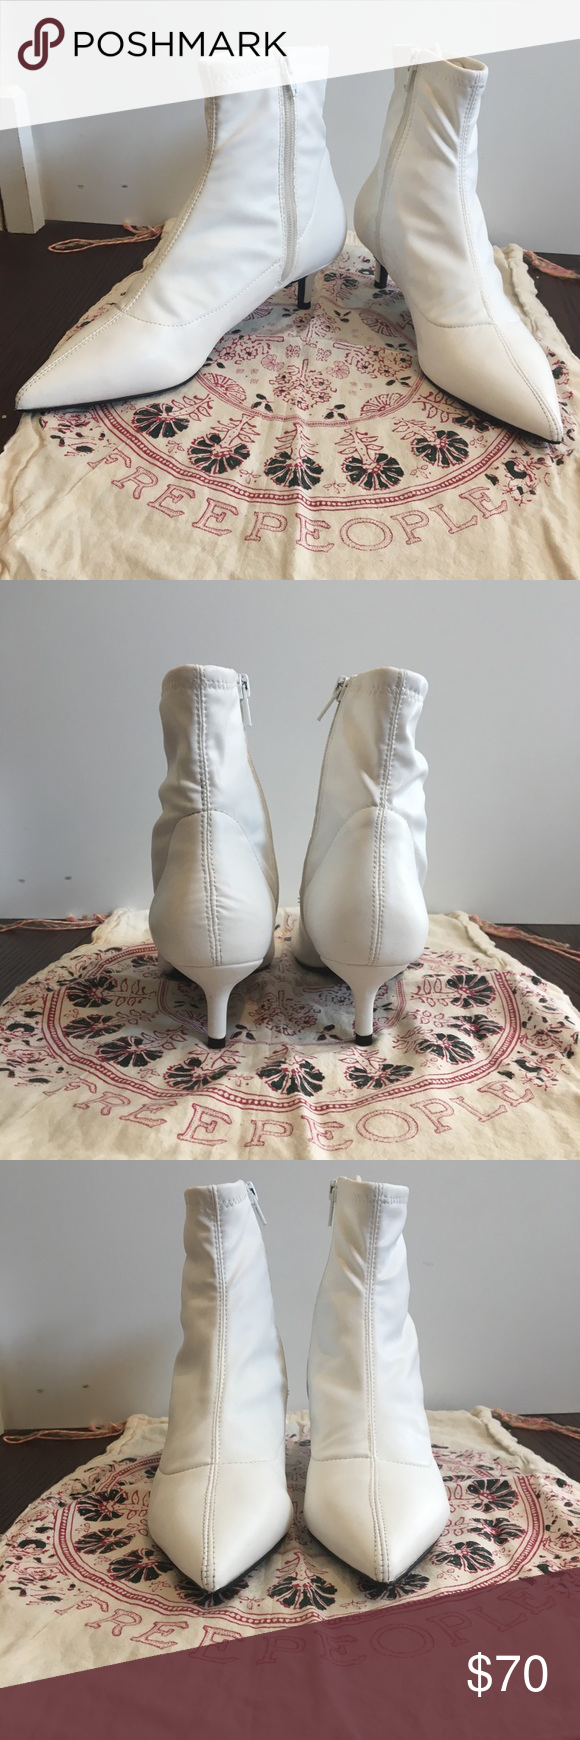 05cc87158e9 Free People Marilyn Kitten Heels Beautiful